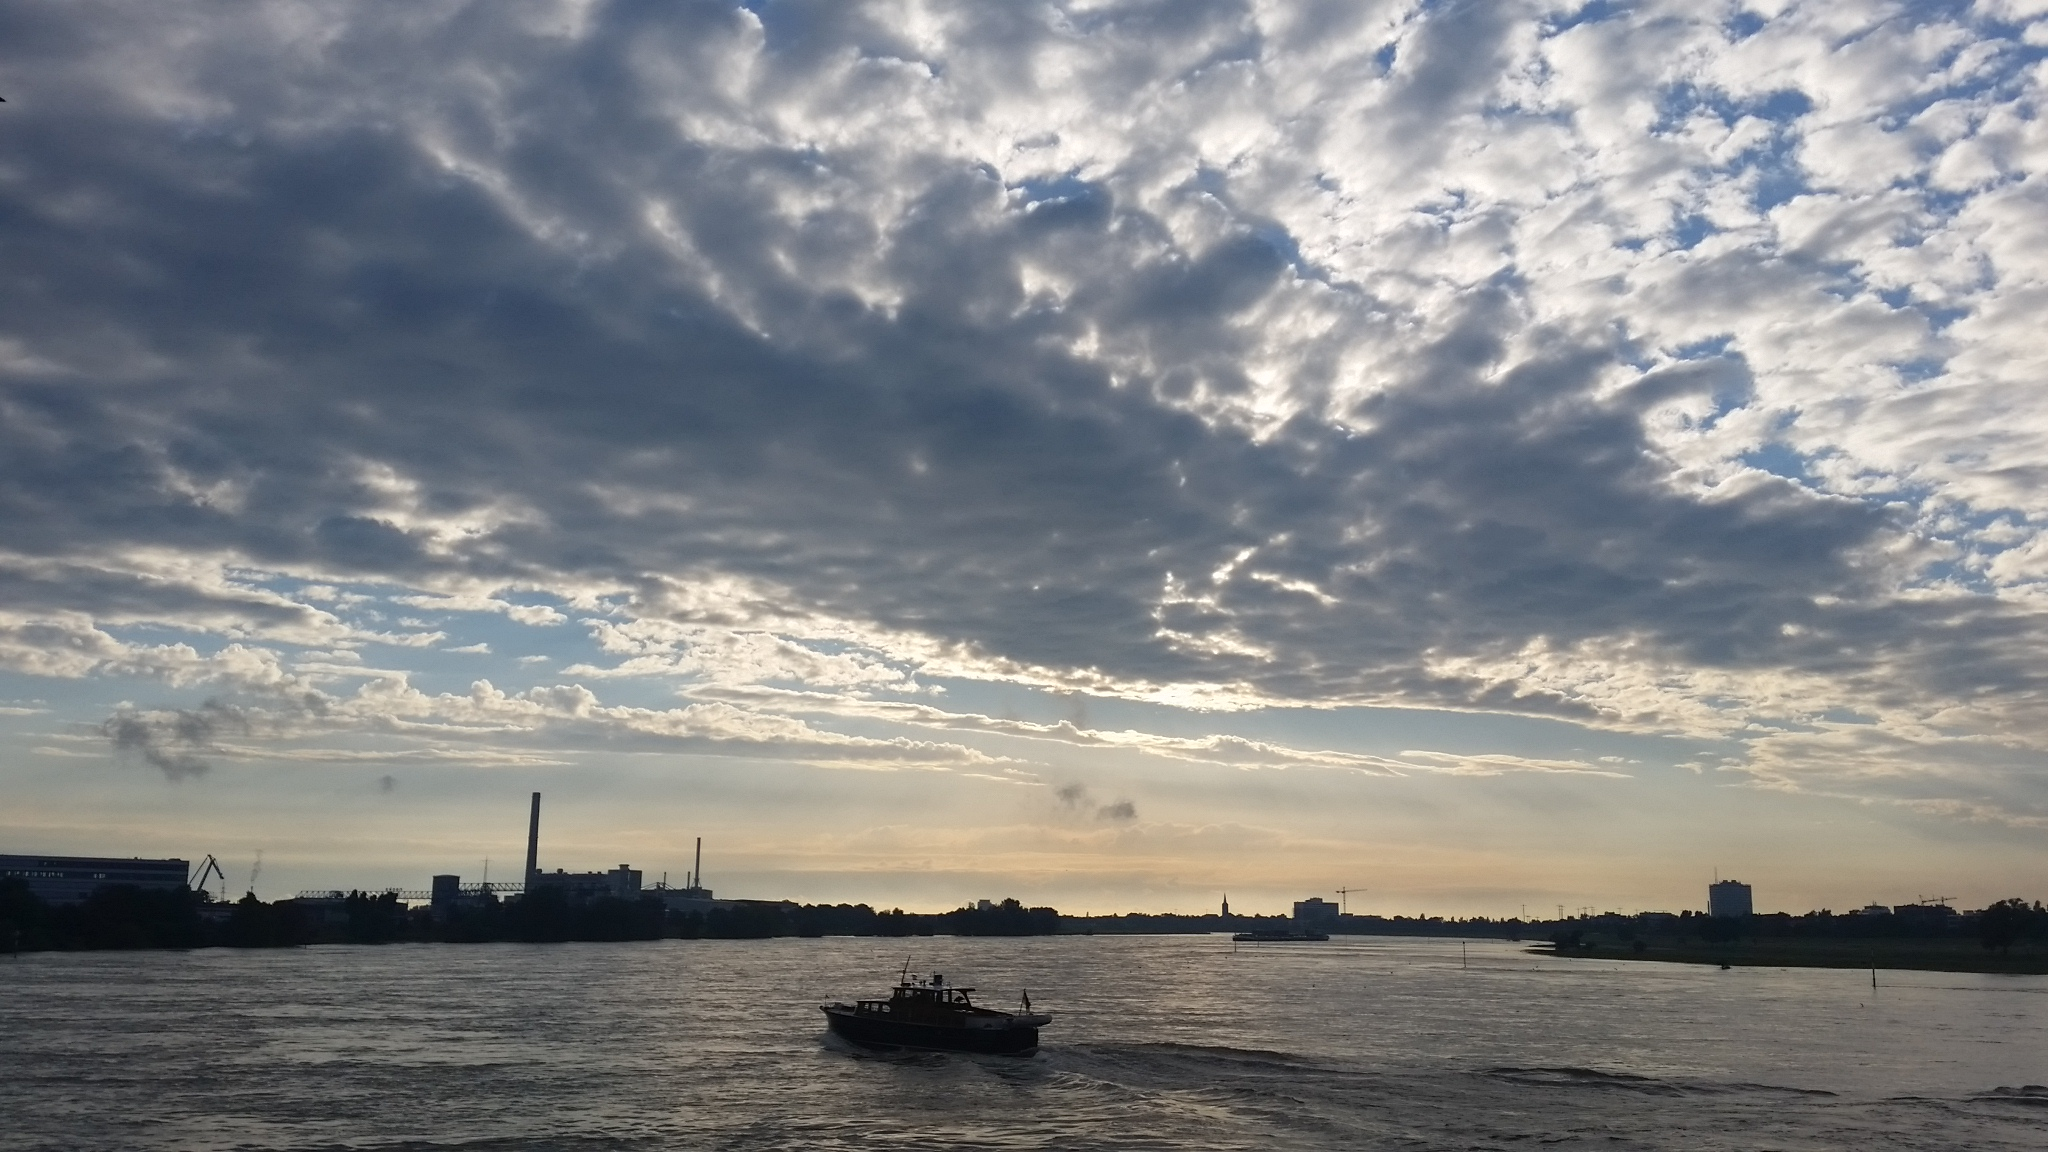 The sky lights up over the Rhein River at Dusseldorf.